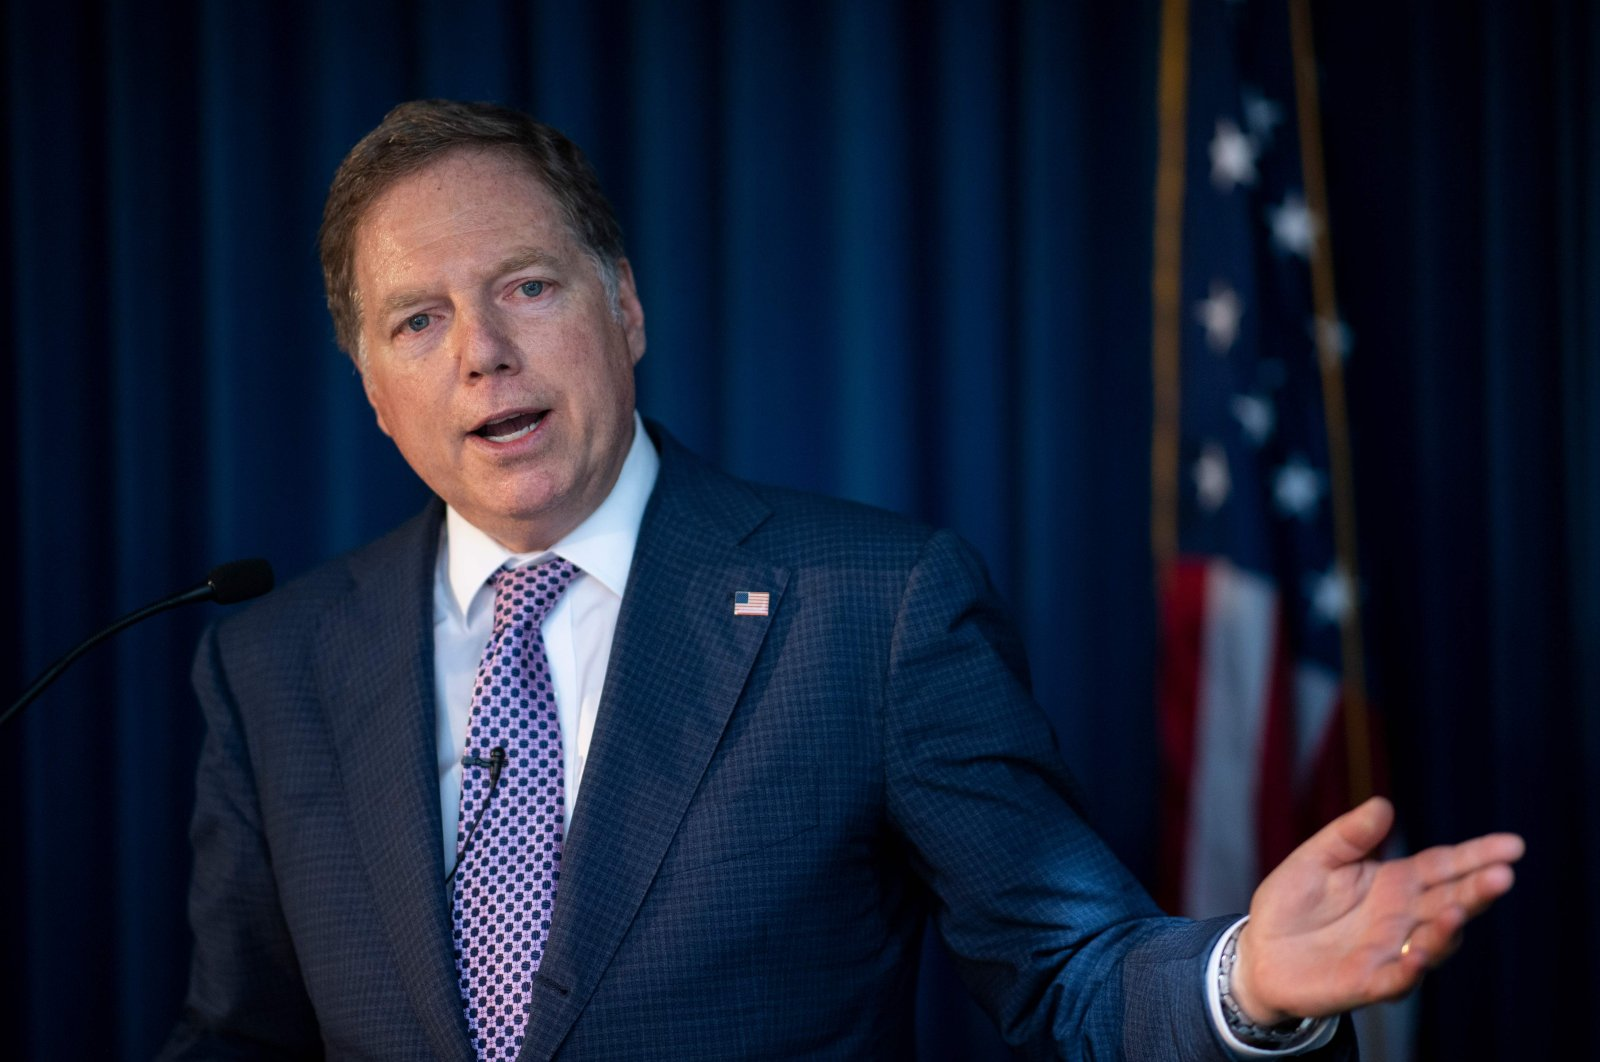 In this file photo taken on October 10, 2019 US Attorney for the Southern District of New York Geoffrey Berman speaks during a press conference in New York City. (AFP Photo)